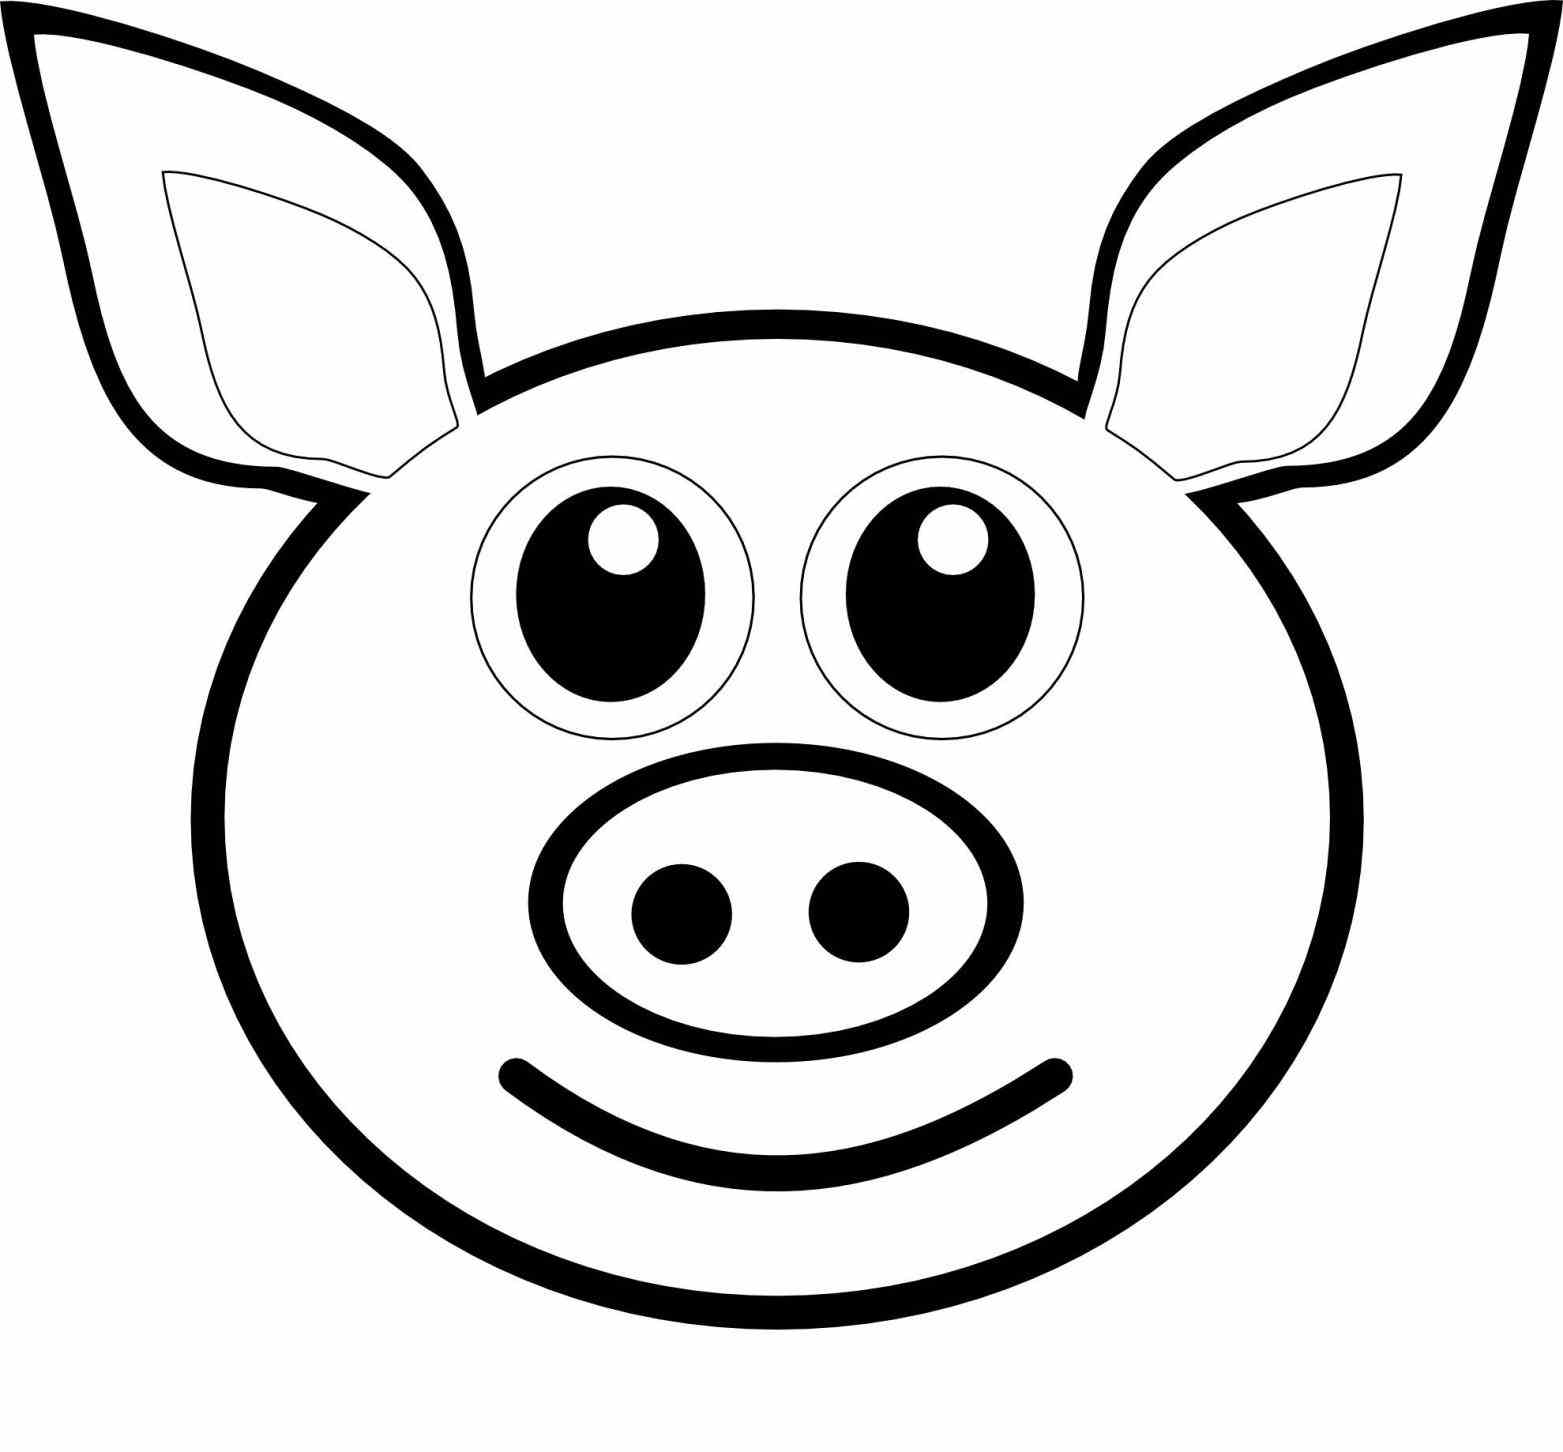 minecraft pig drawing minecraft pig drawing at getdrawings free download minecraft pig drawing 1 1